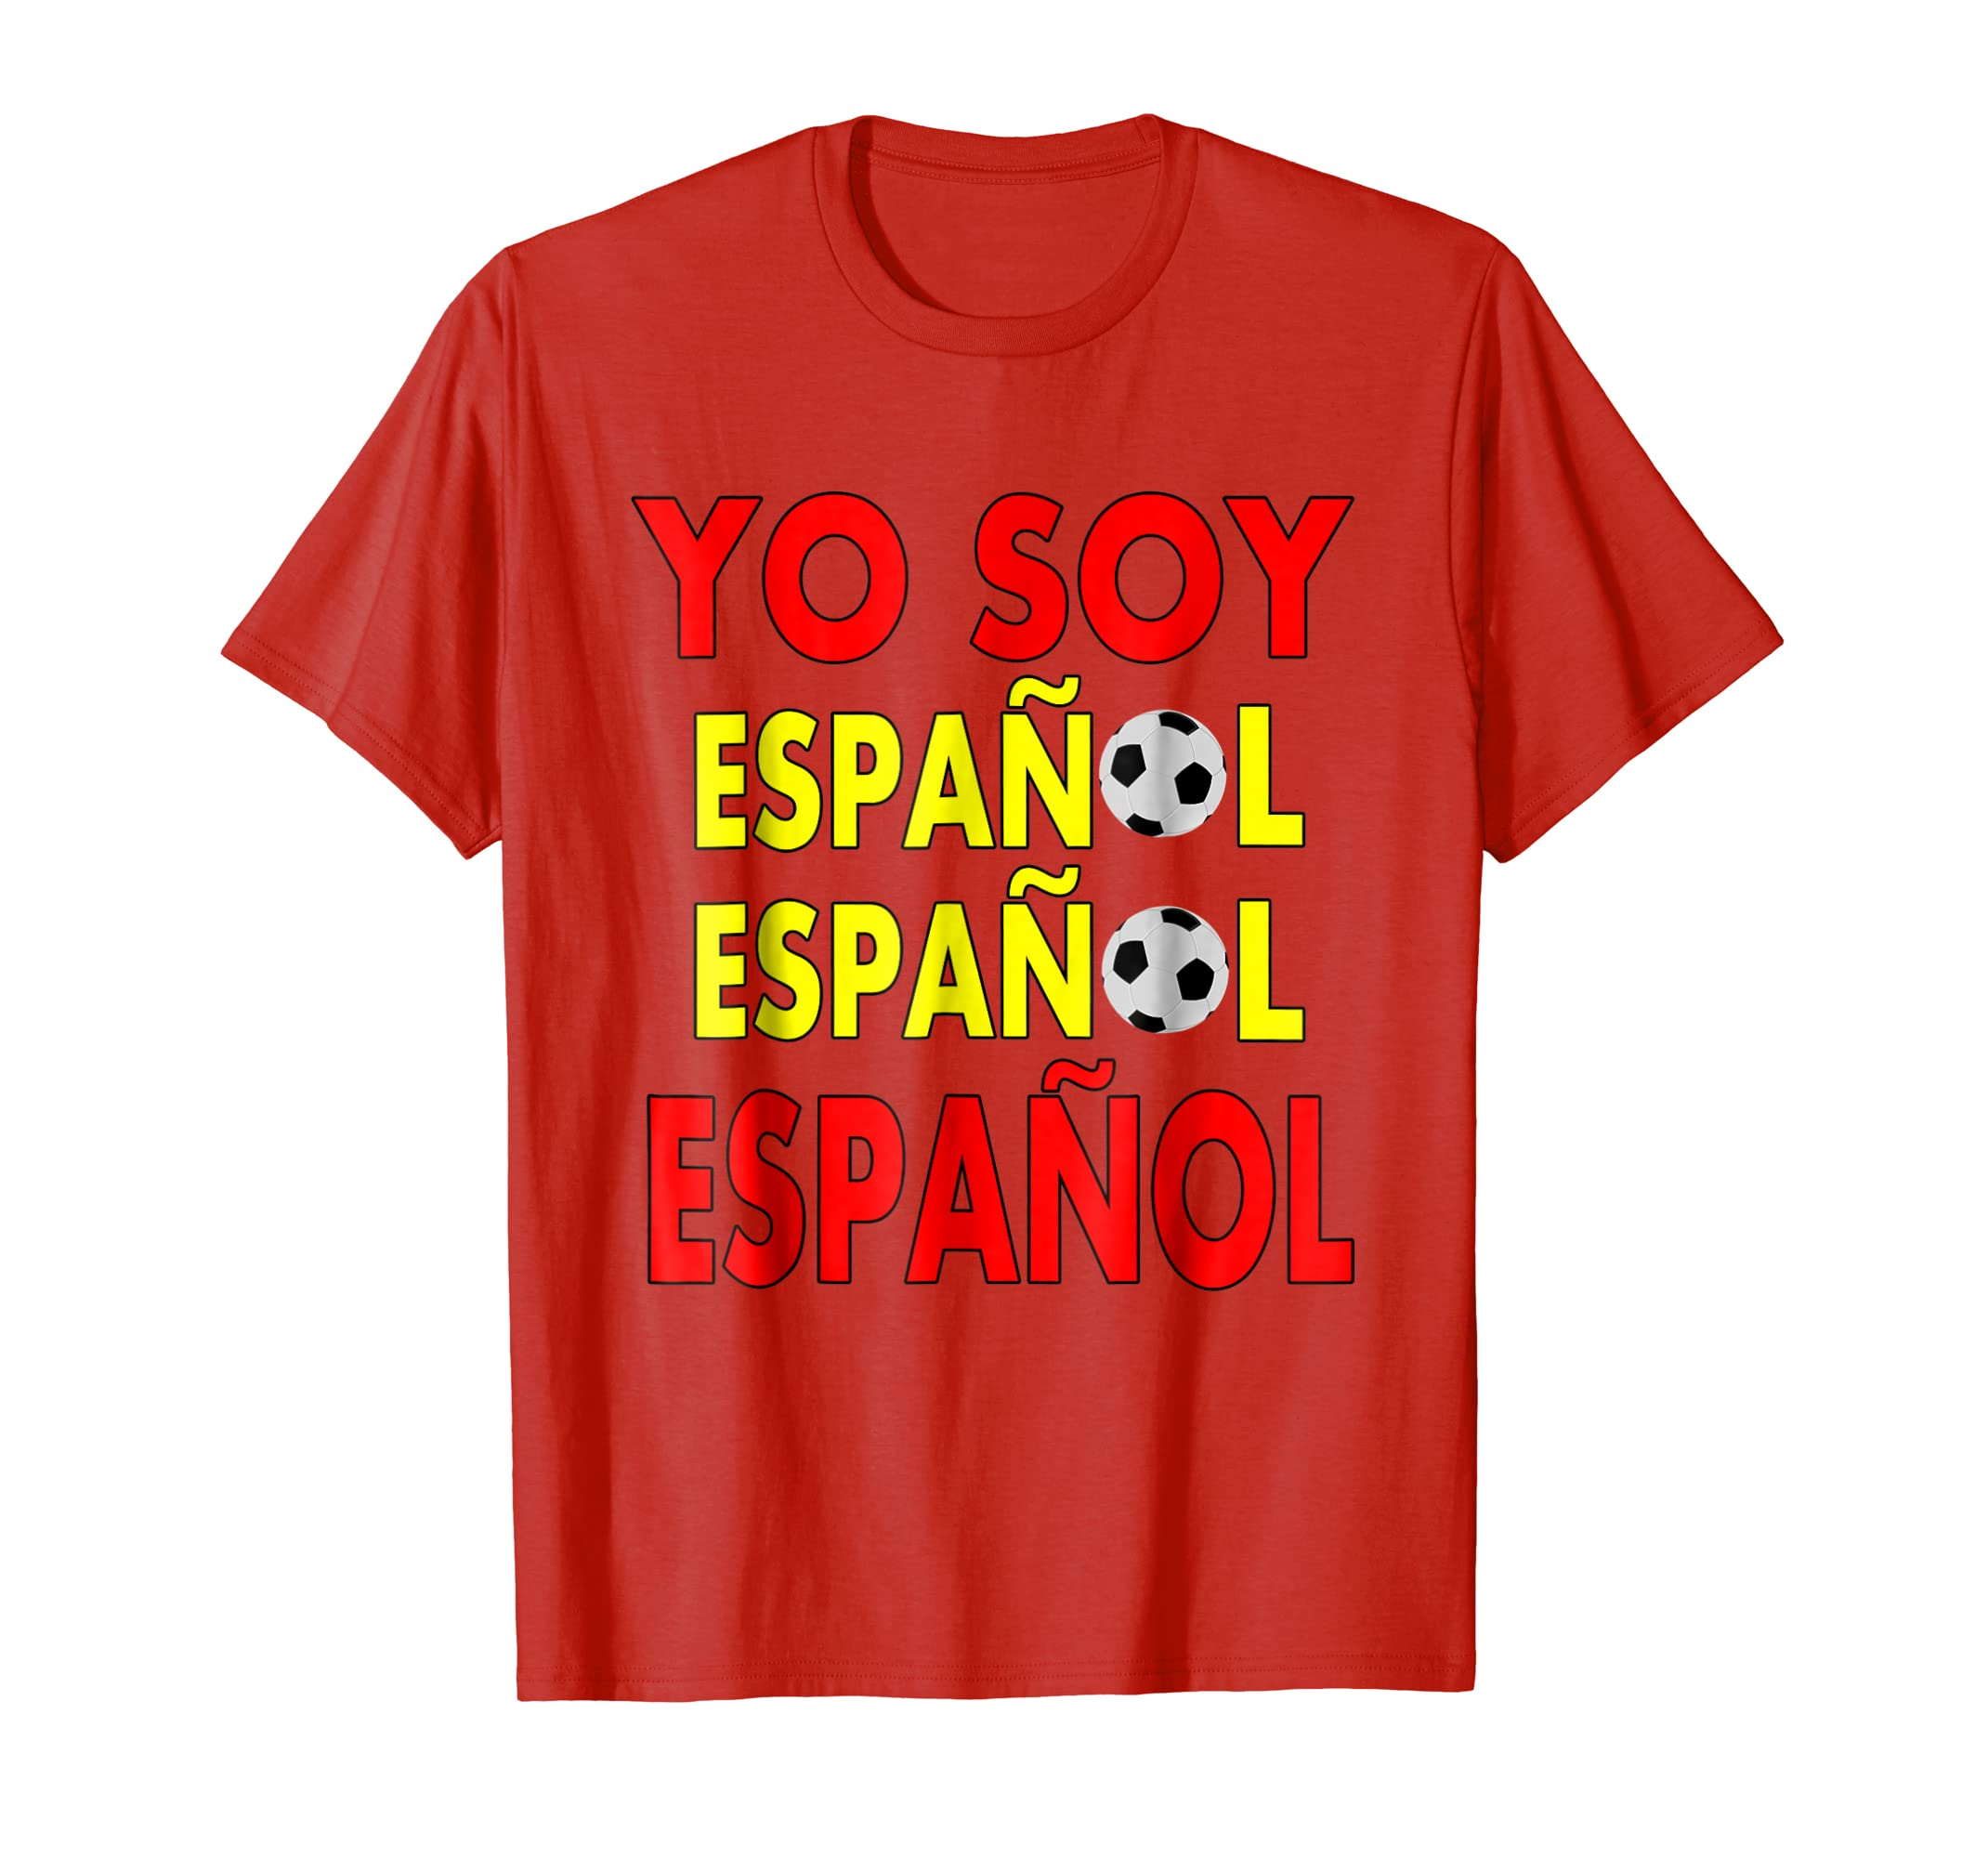 Amazon.com: Camiseta de Espana Futbol Spaniard Shirt National Team Shirt: Clothing